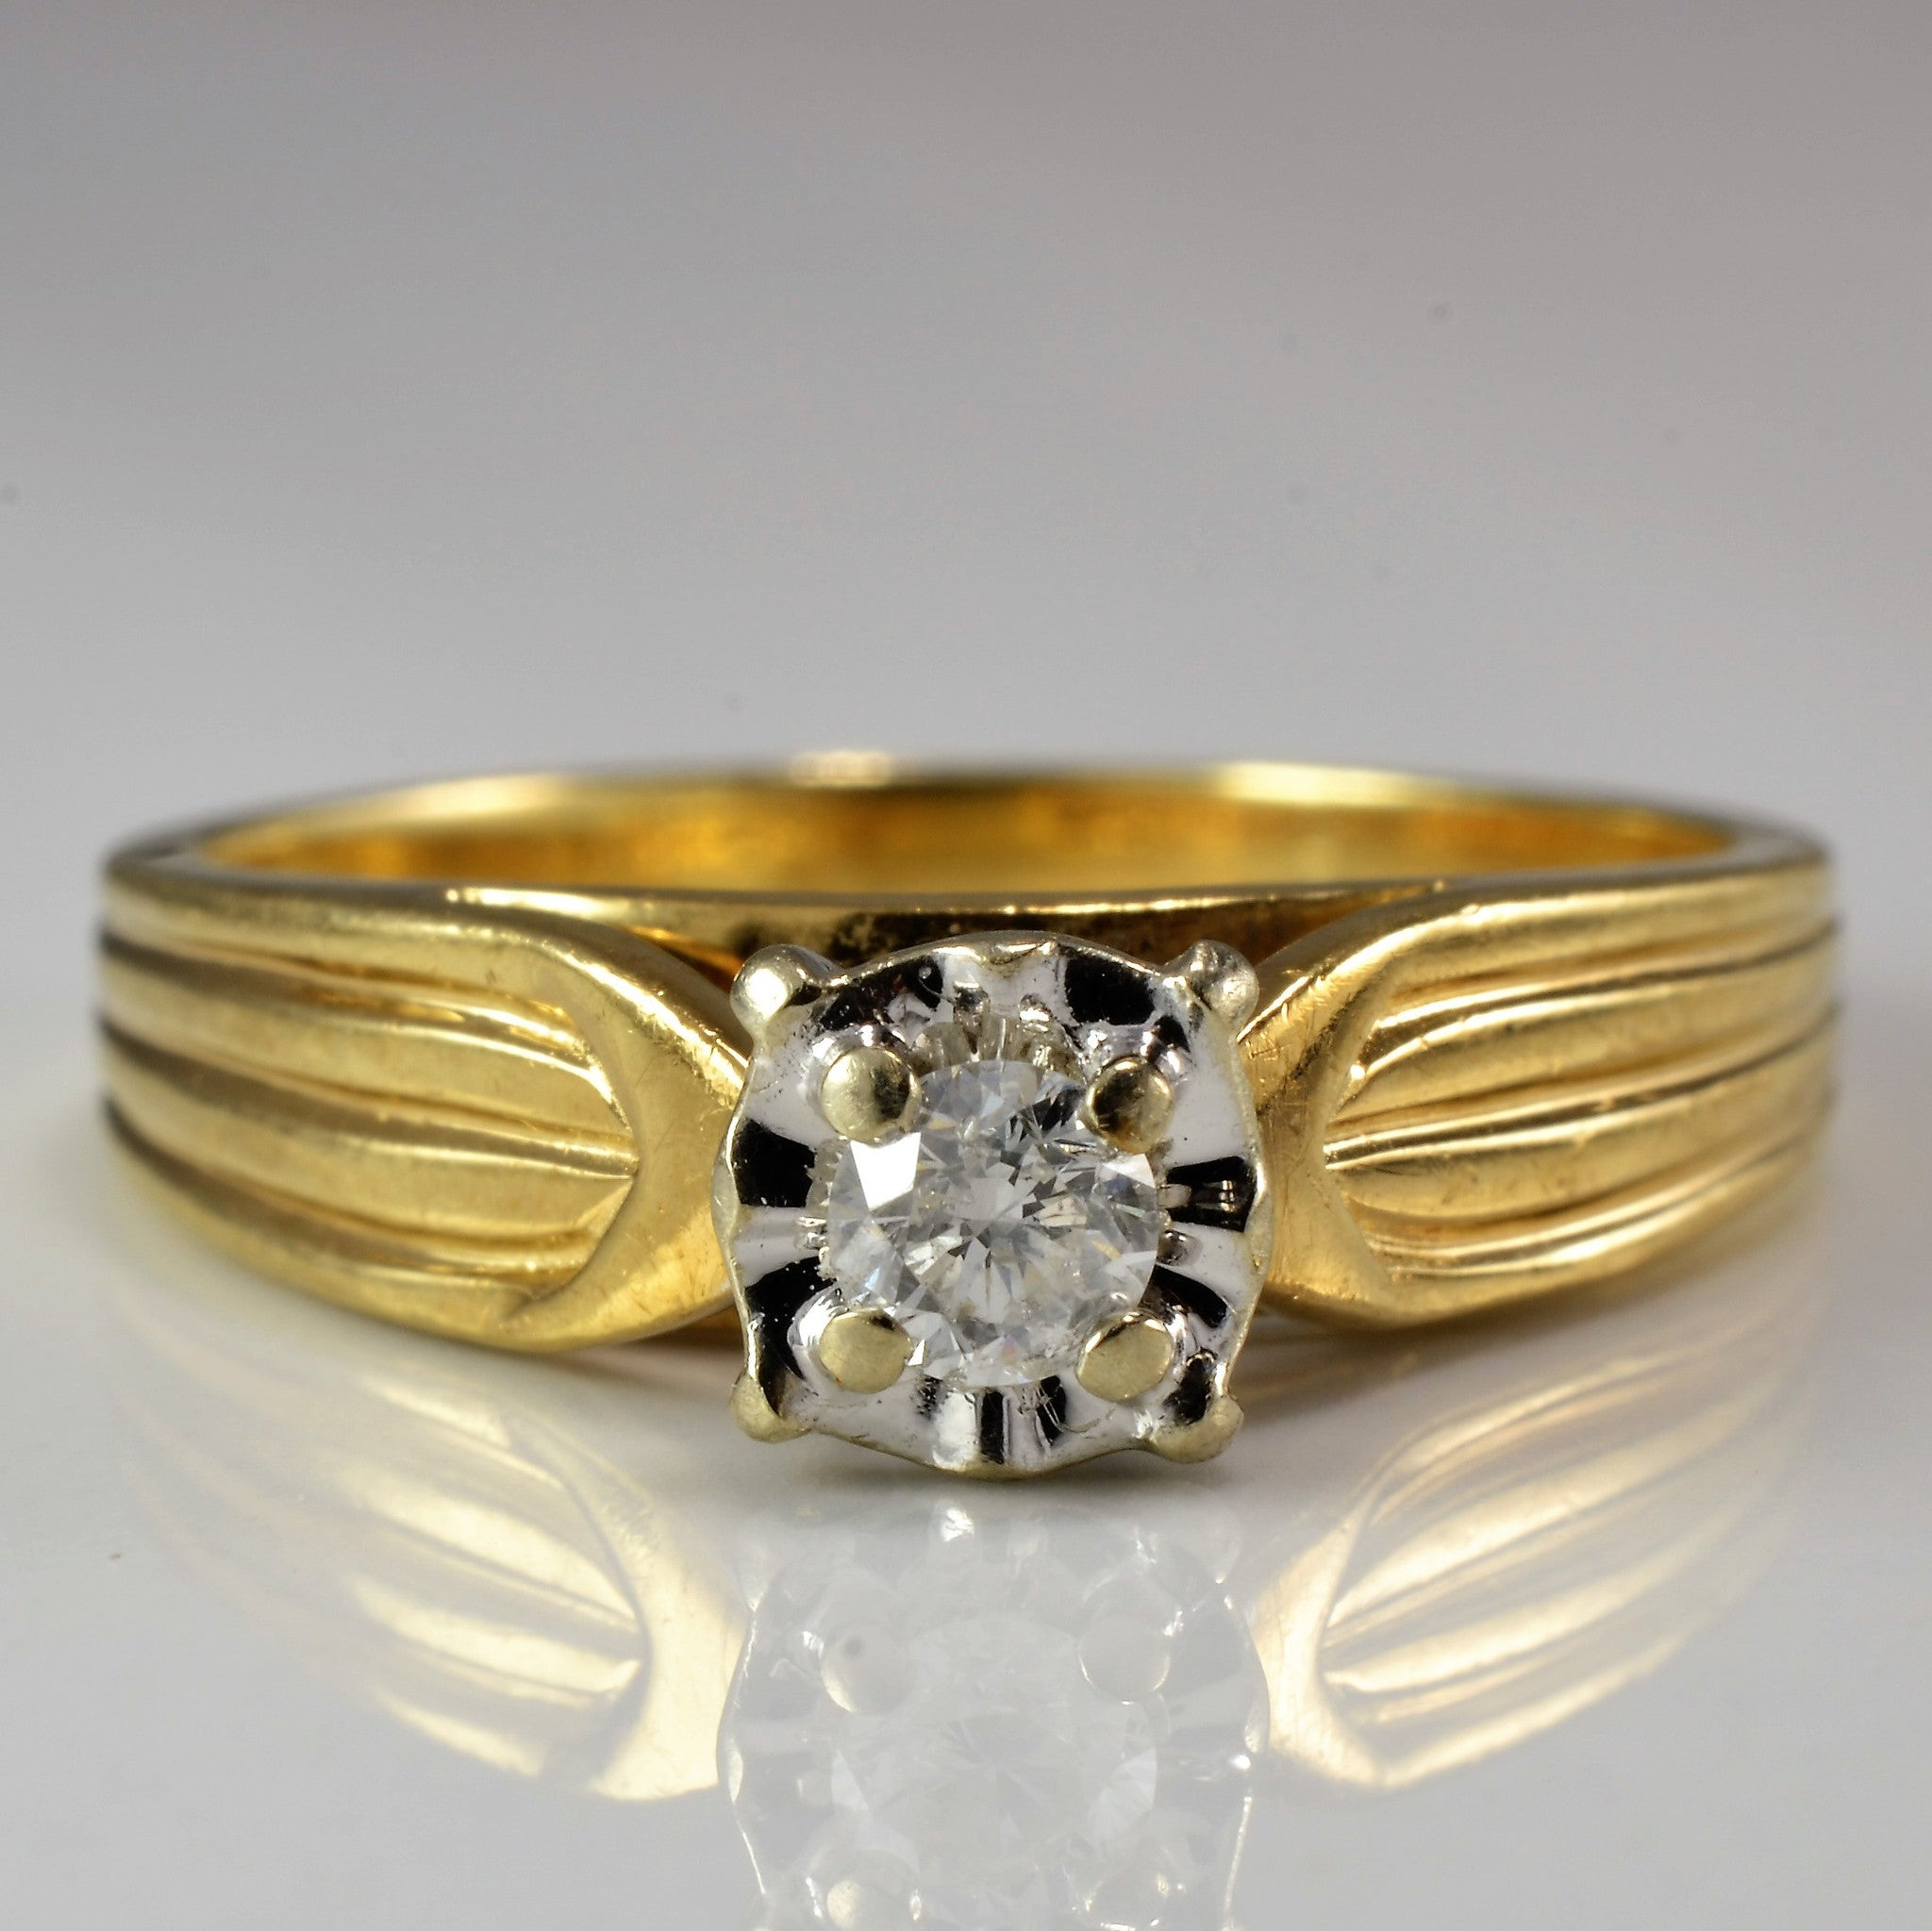 Wide Band Illusion Solitaire Ring | 0.13 ct, SZ 7 |